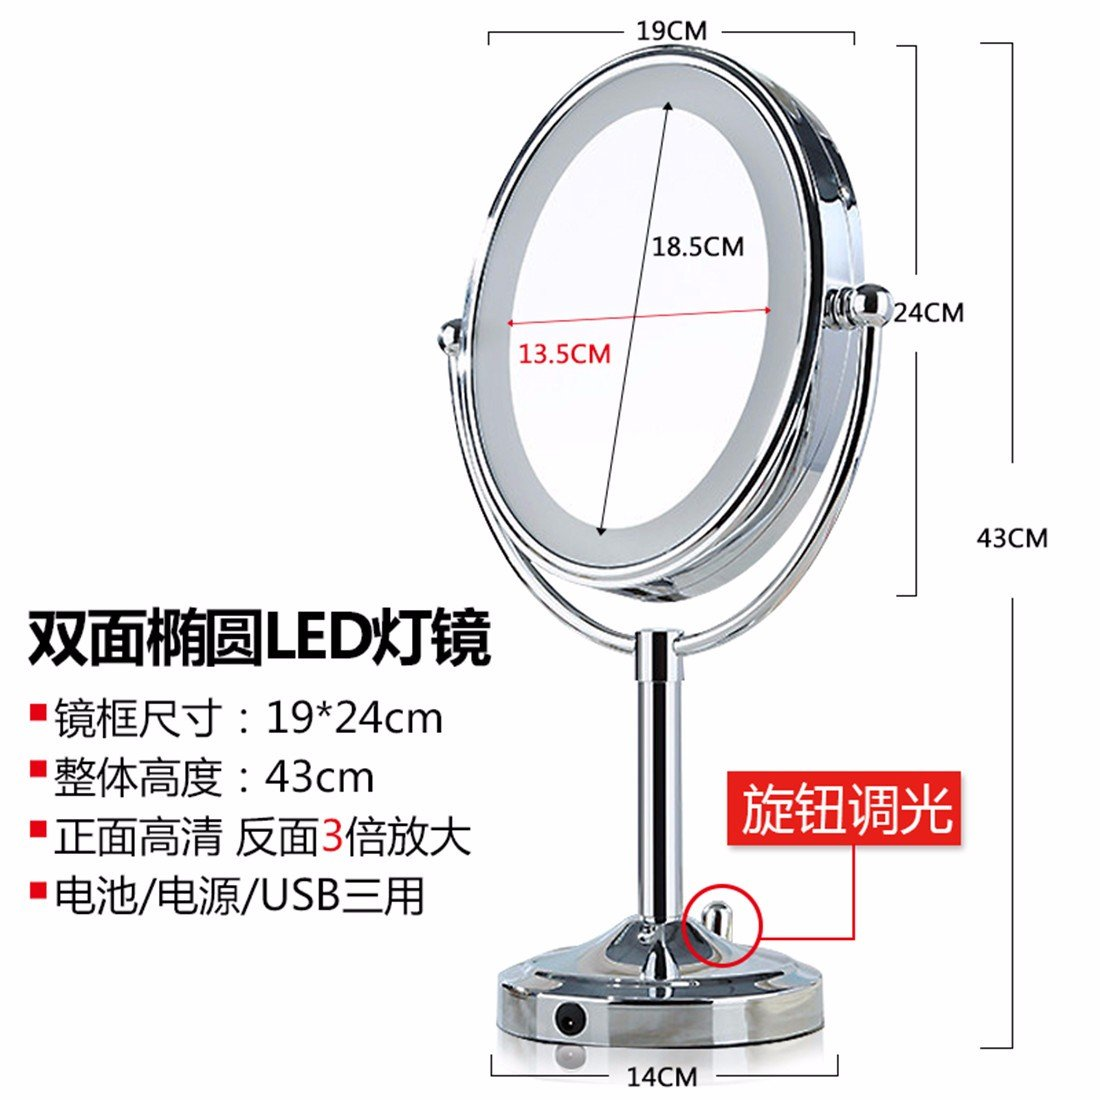 STAZSX Leds make-up mirror desktop light mirror continental large two-sided vanity mirror marriage Princess Mirror mirrors , with light oval led light Mirror